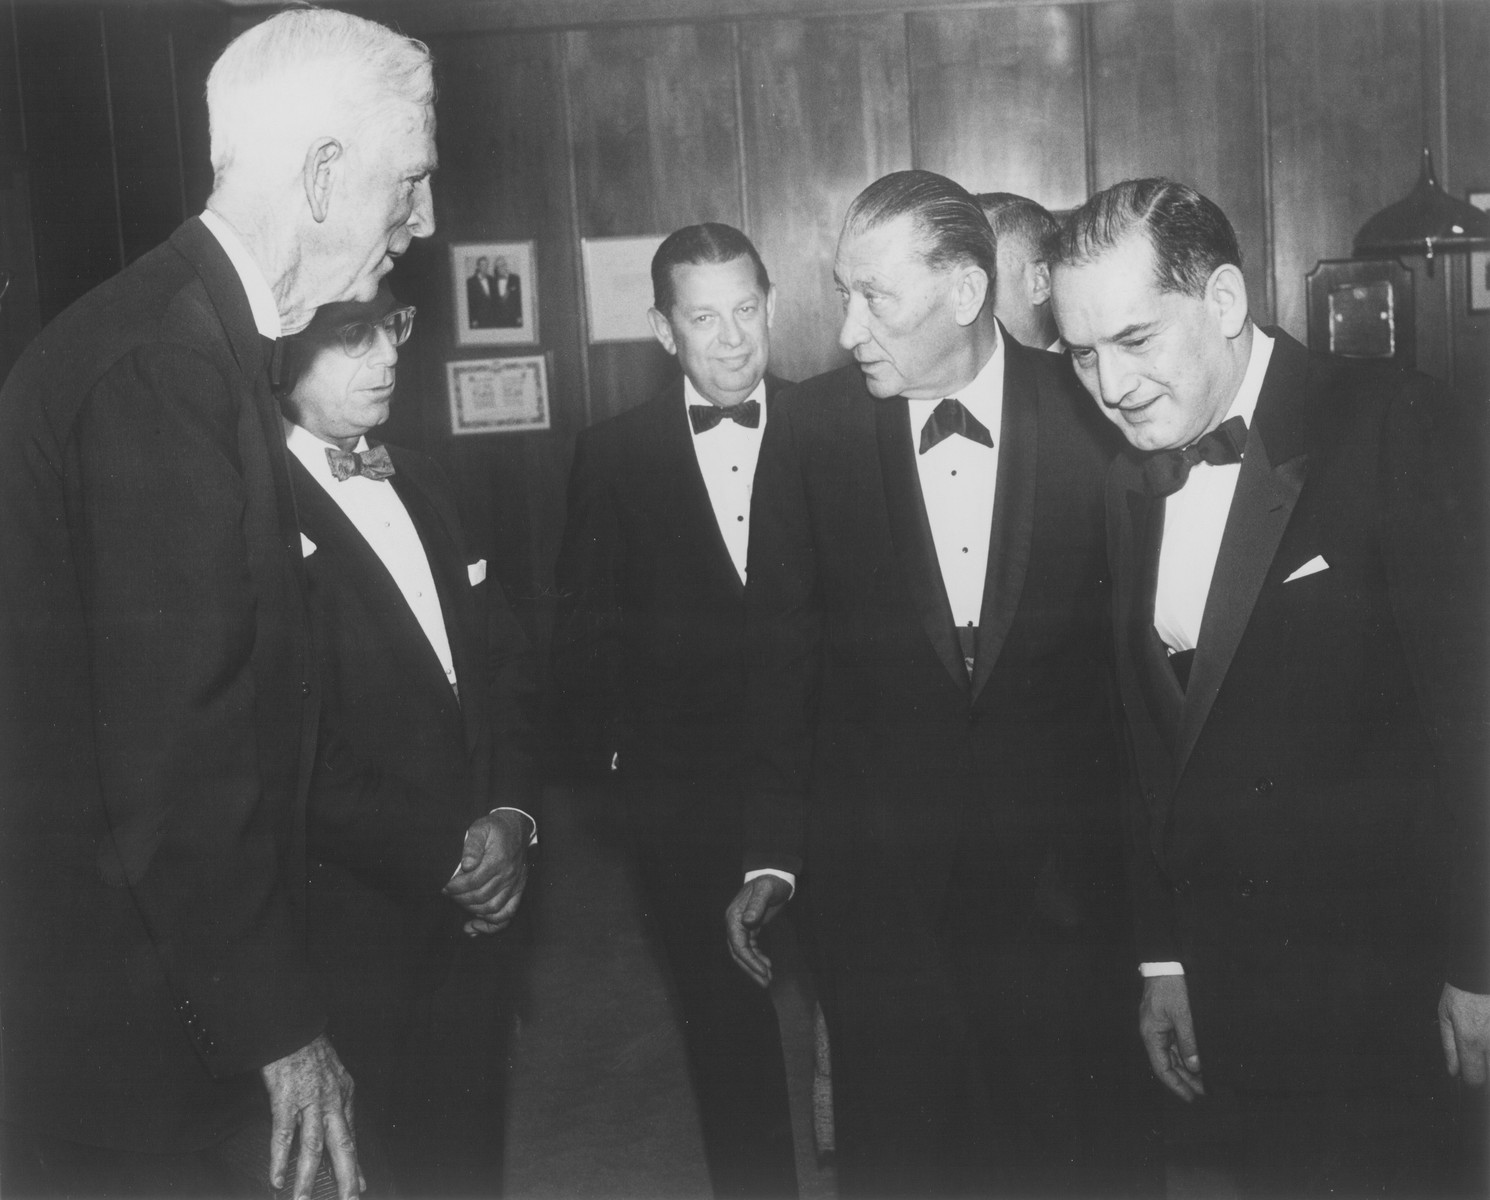 American Jewish philanthropist Abraham S. Kay speaks to James G. McDonald and others at an affair in Washington, D.C.  Pictured from left to right are: James G. McDonald, unknown, Stanley Weiner, Abraham S. Kay and Abraham Harman (right, foreground).